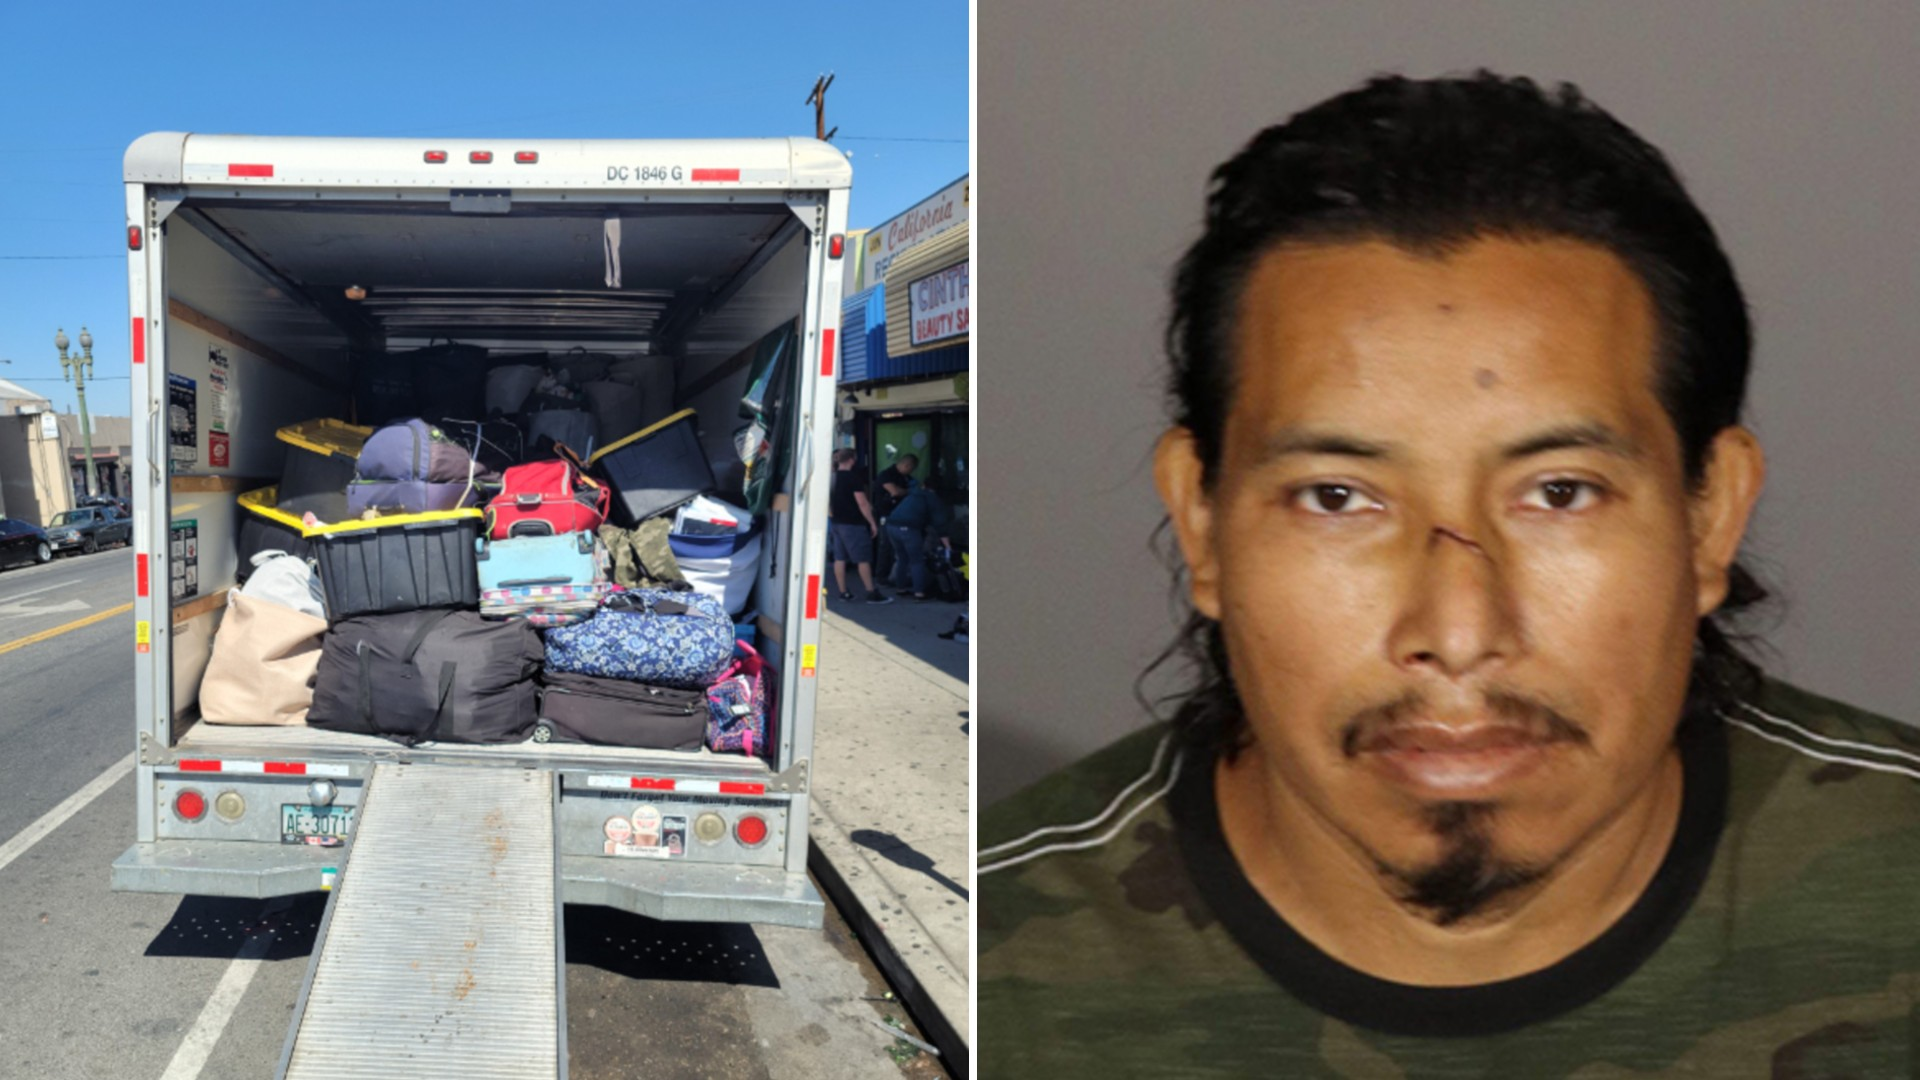 Angel Pedro, 44 of Los Angeles, is seen in a photo released on Aug. 9, 2021, next to an image of stolen items he allegedly tried to resell. (Glendale Police Department)